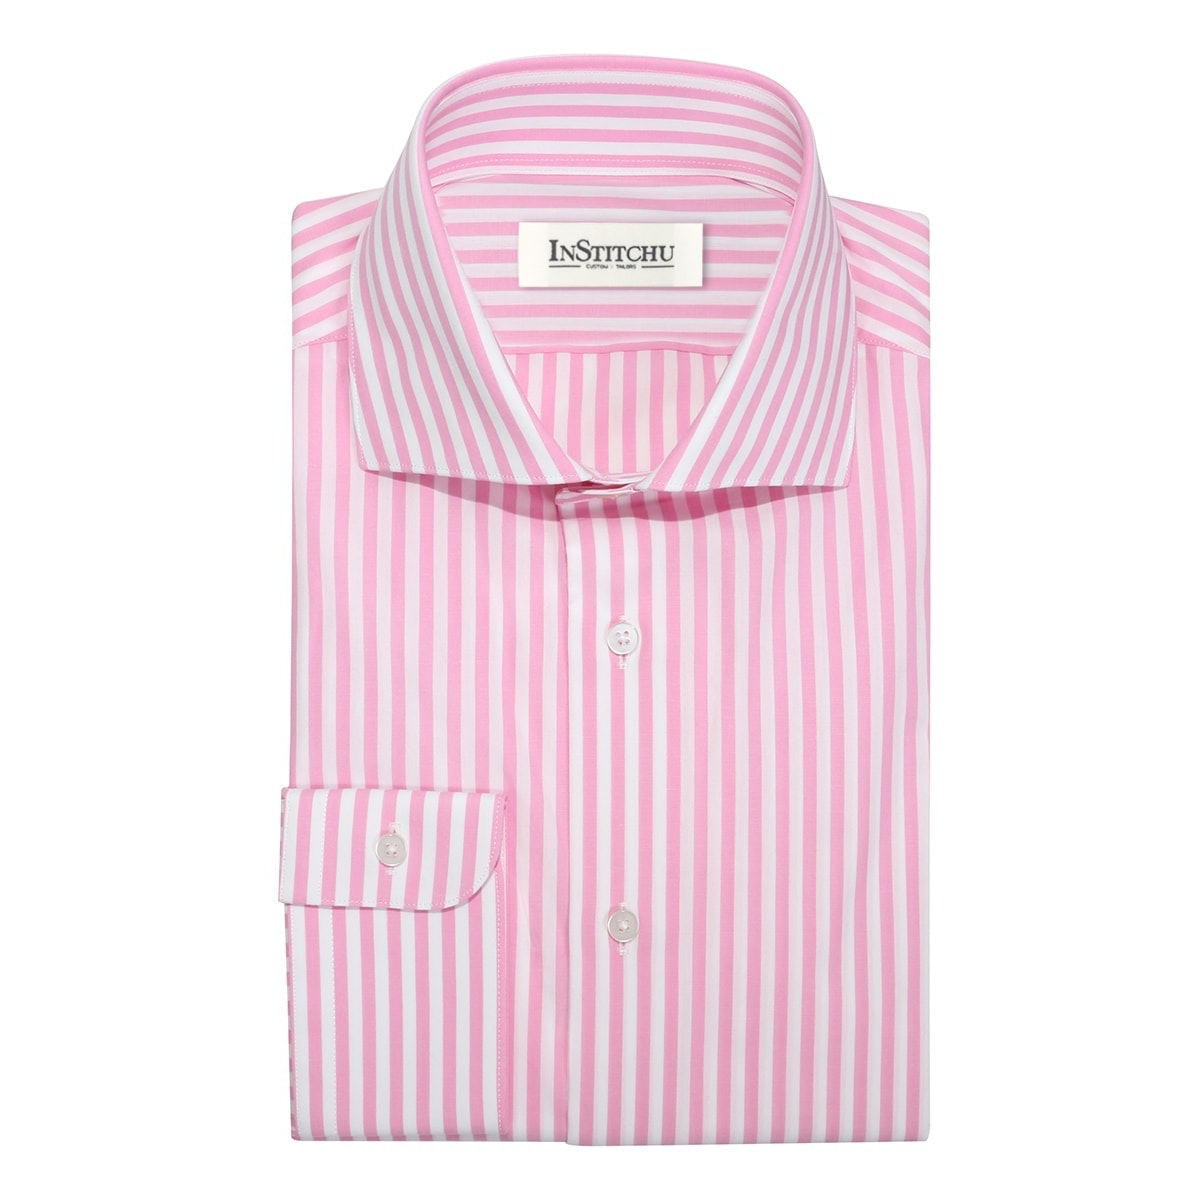 InStitchu Collection The Anawhata Pink Stripe Shirt